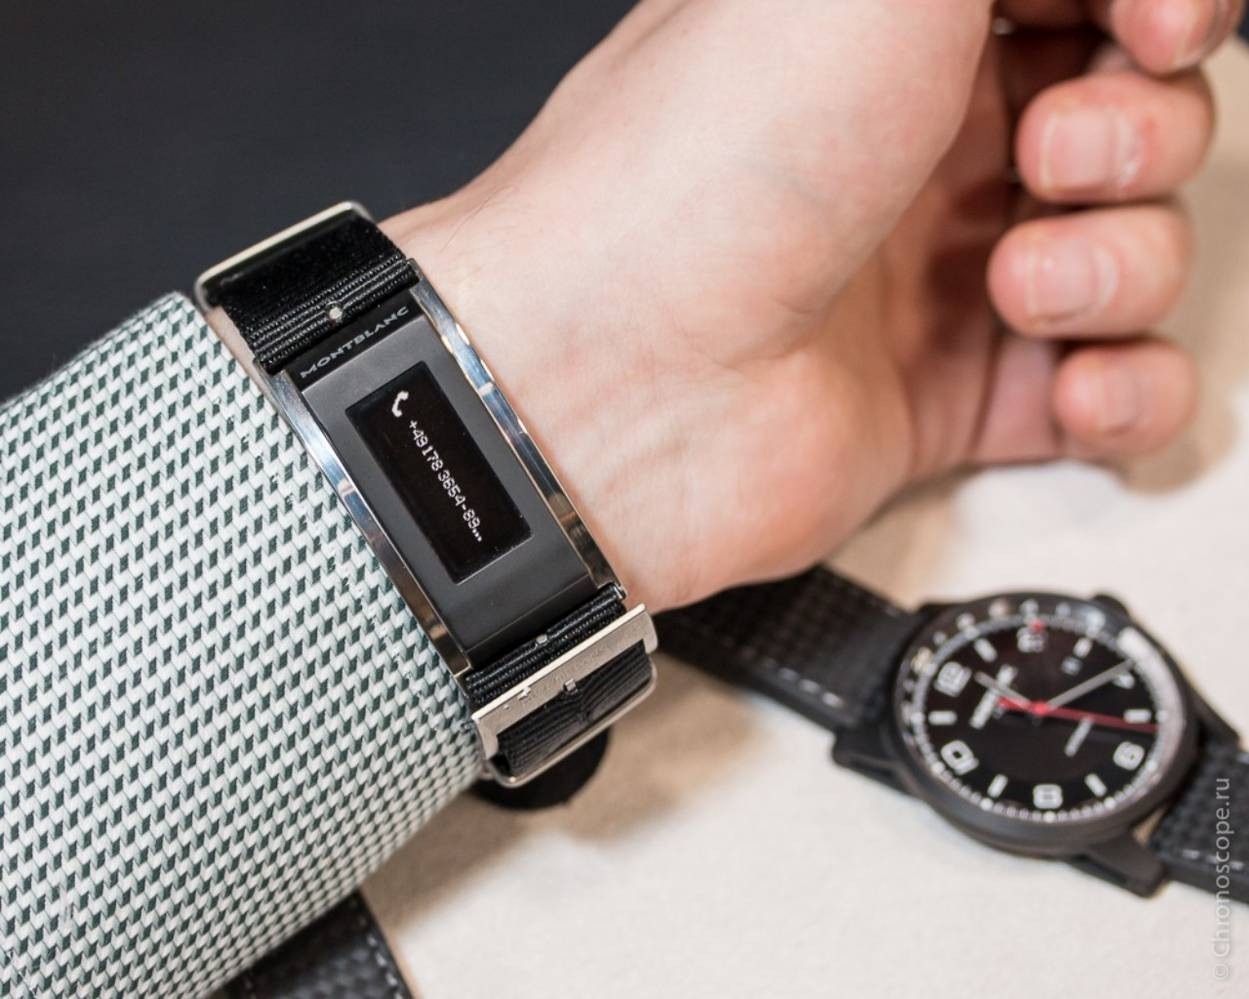 dây đồng hồ Montblanc E-strap